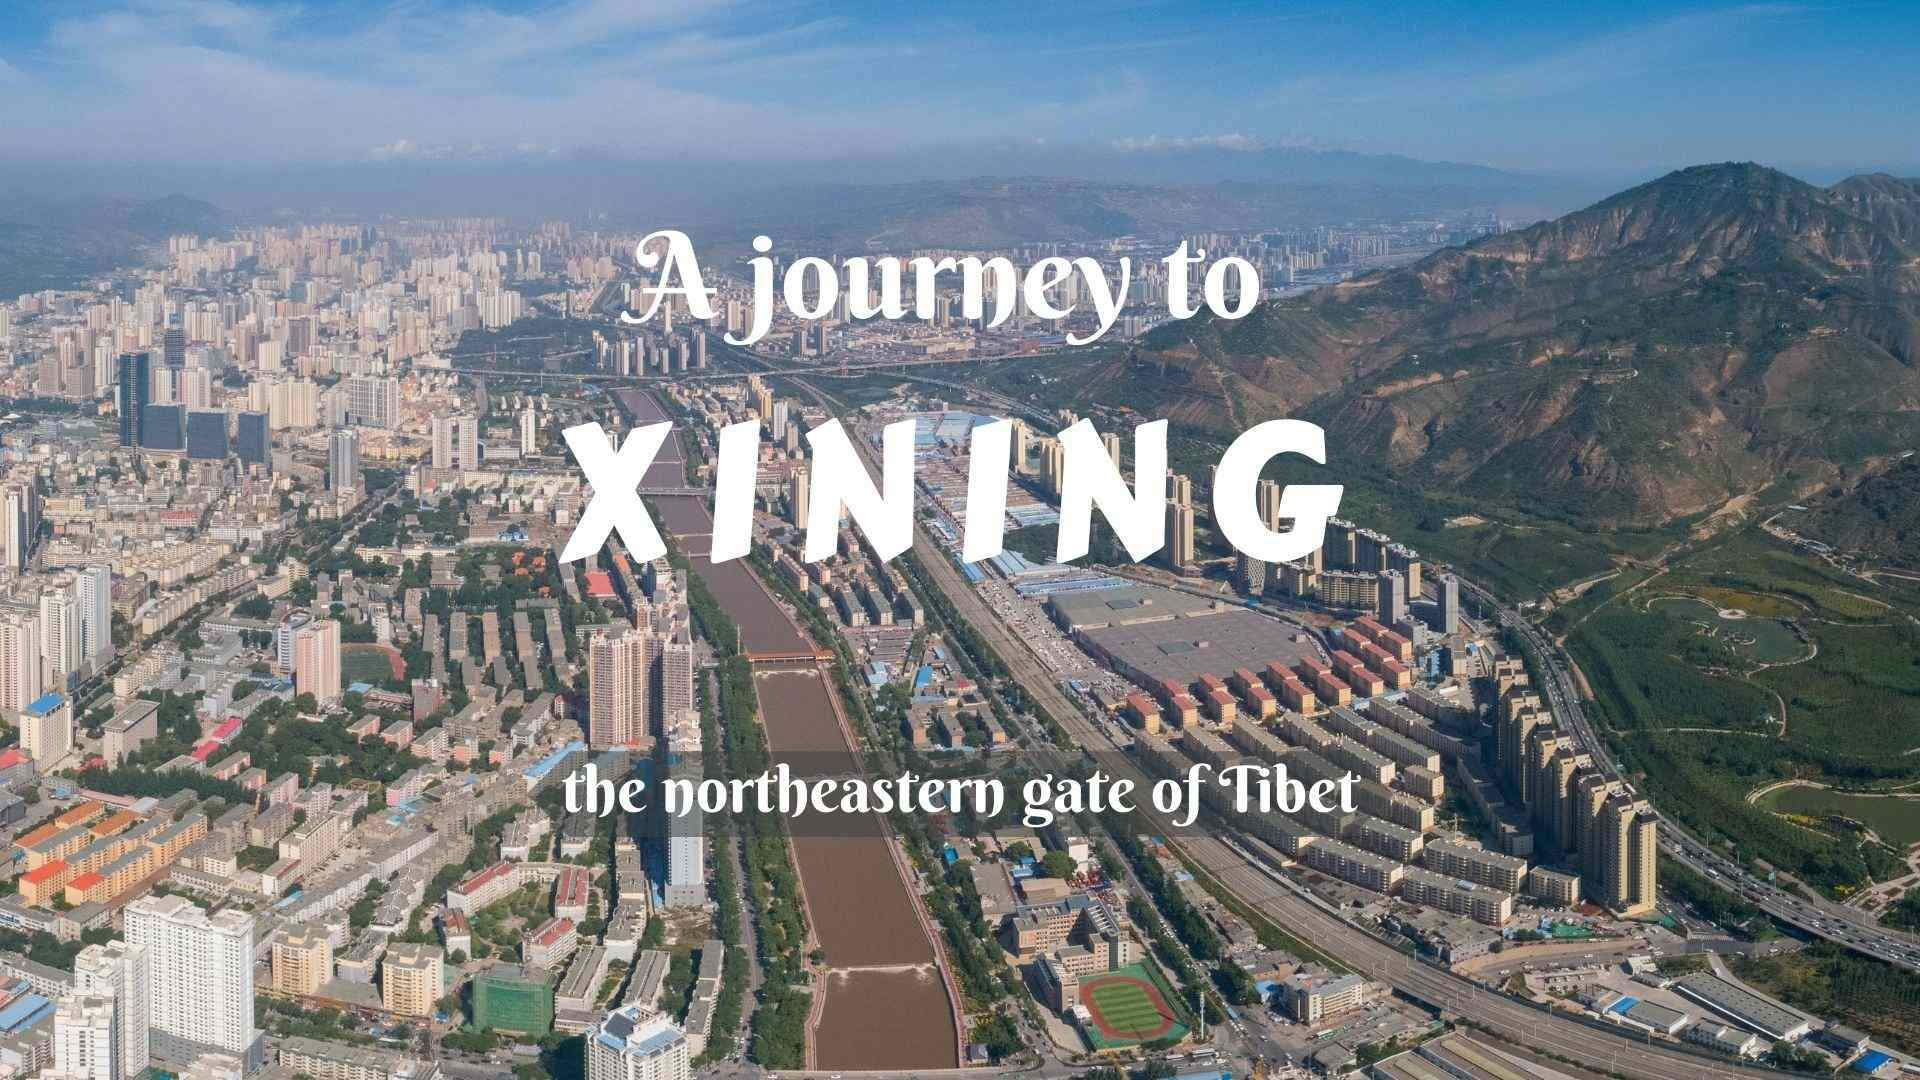 A journey to Xining- the northeastern gate of Tibet